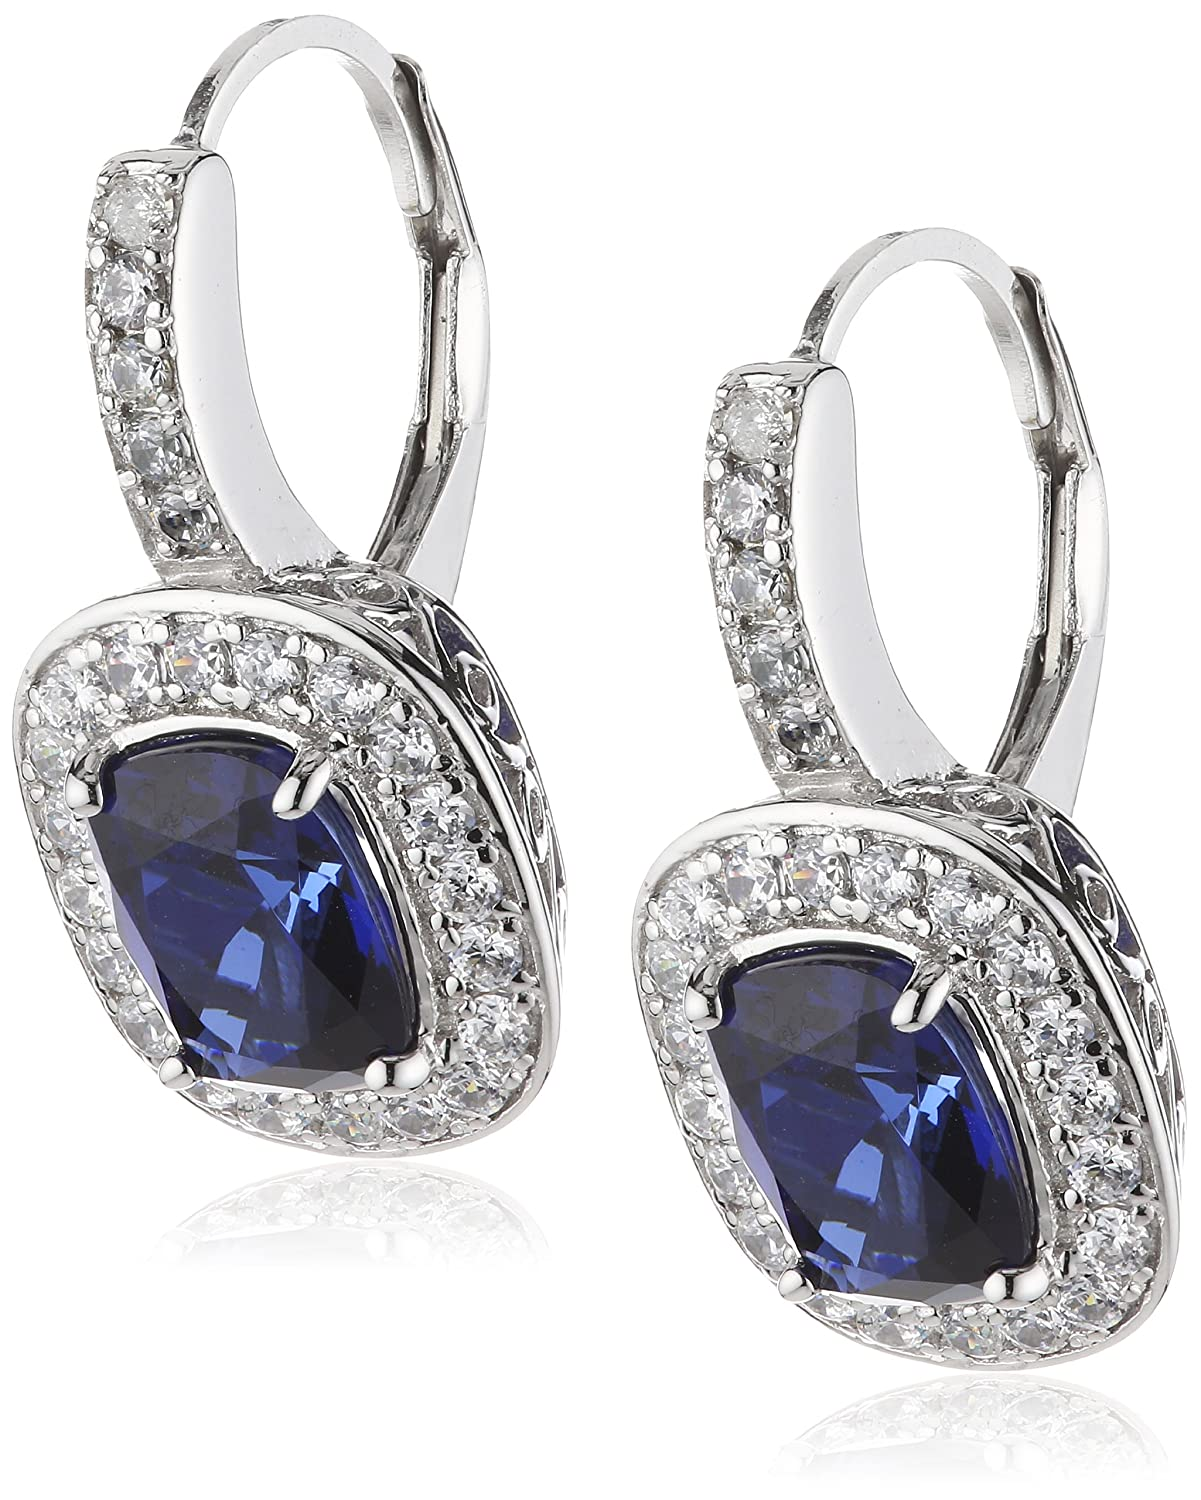 Diamonfire Damen-Ohrhänger 925 Sterling Silber Zirkonia Royal Colours Linie blau 62/1430/1/089